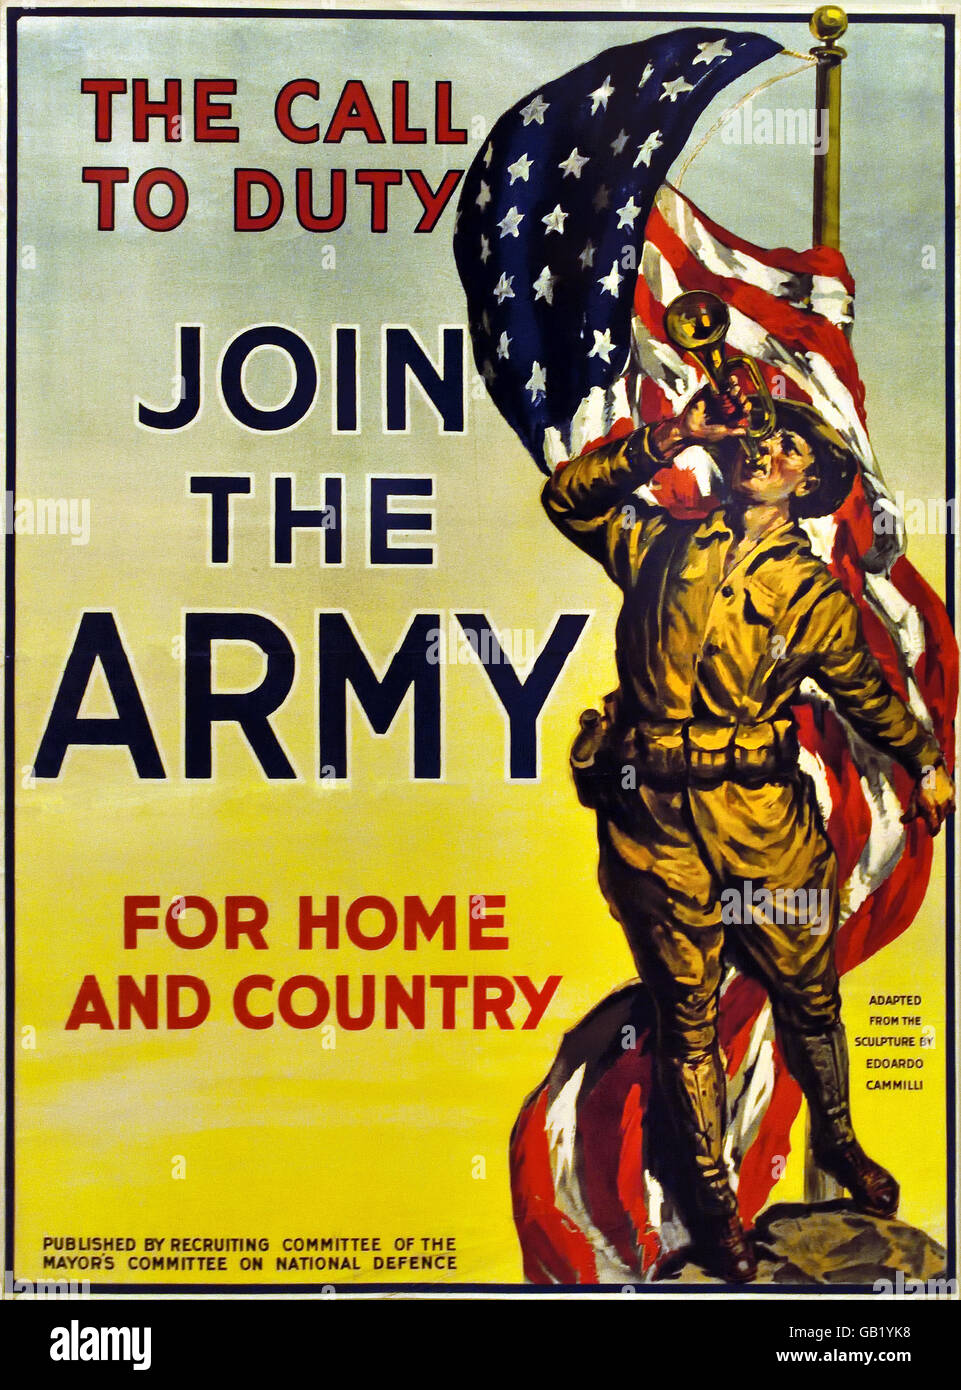 The call to Duty - Join the Army - For Home and Country US Army World War one 1914 -1918 United states of America - Stock Image